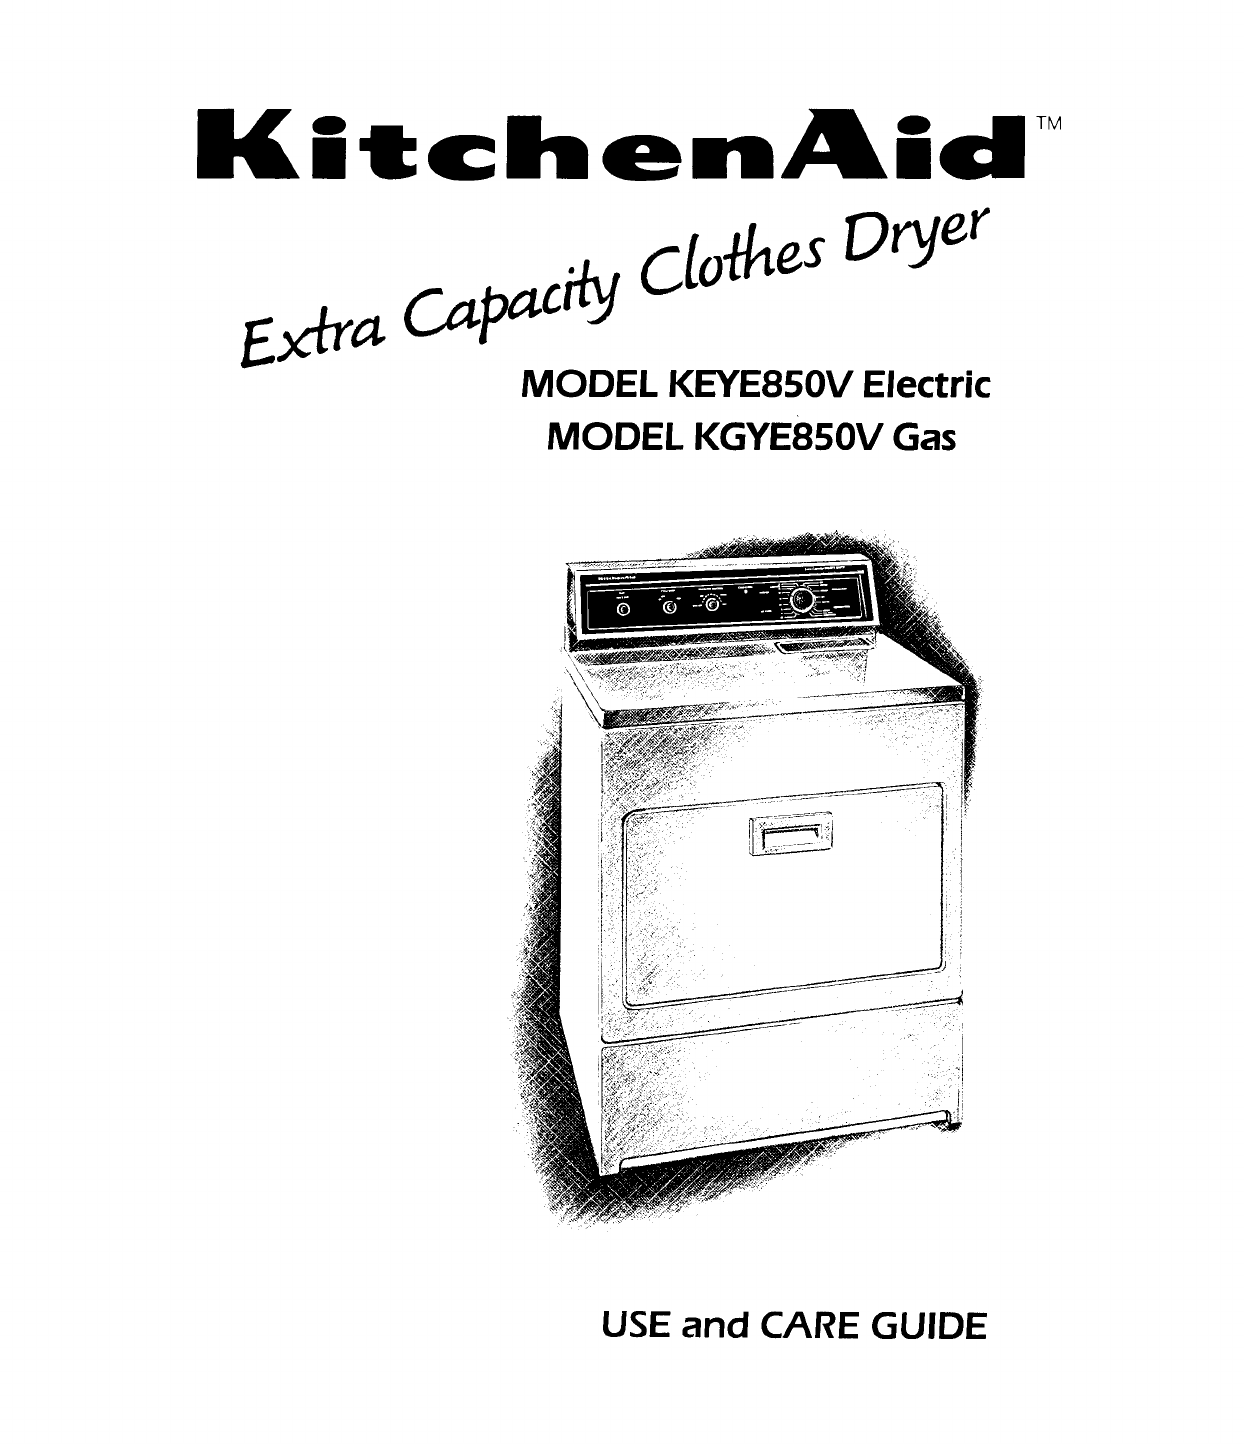 KitchenAid KEYE850V, KEYE850V Electric, KGYE850V, KGYE850V